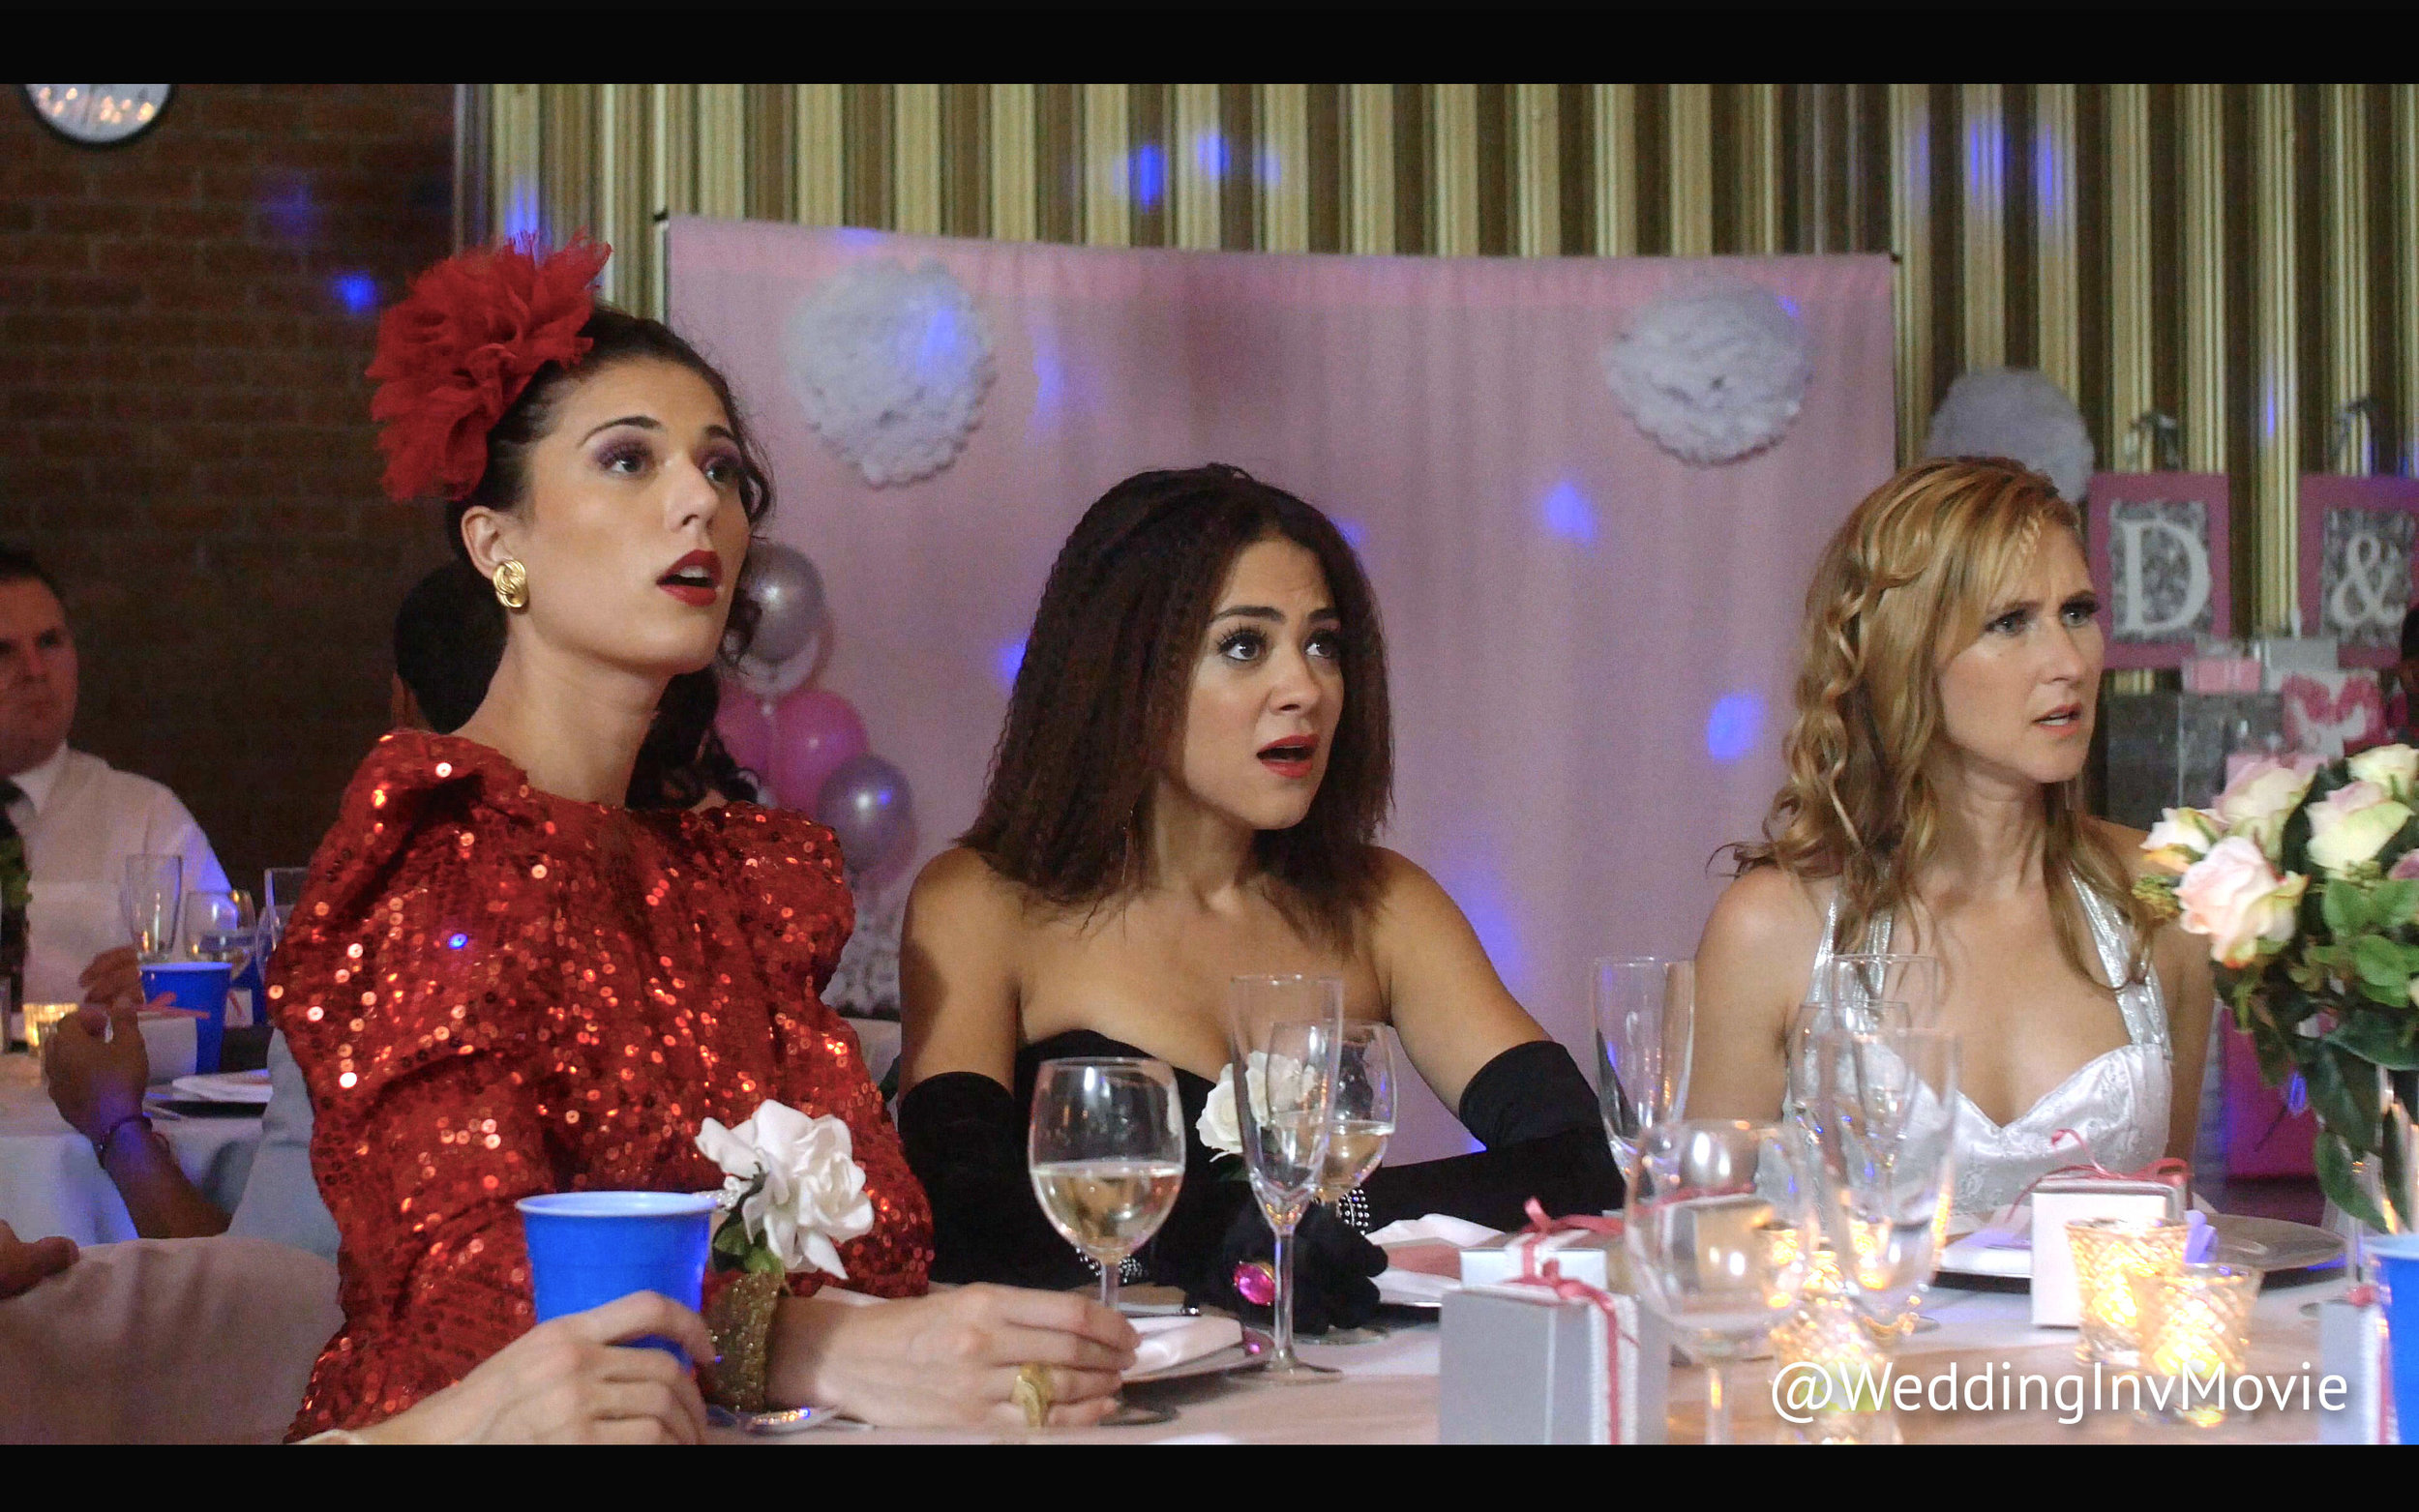 Nectar (Christina Ulloa) Ryann (Camille Guaty) and Lucy (Rainy Kerwin) get a shock when they discover something fascinating at the wedding.